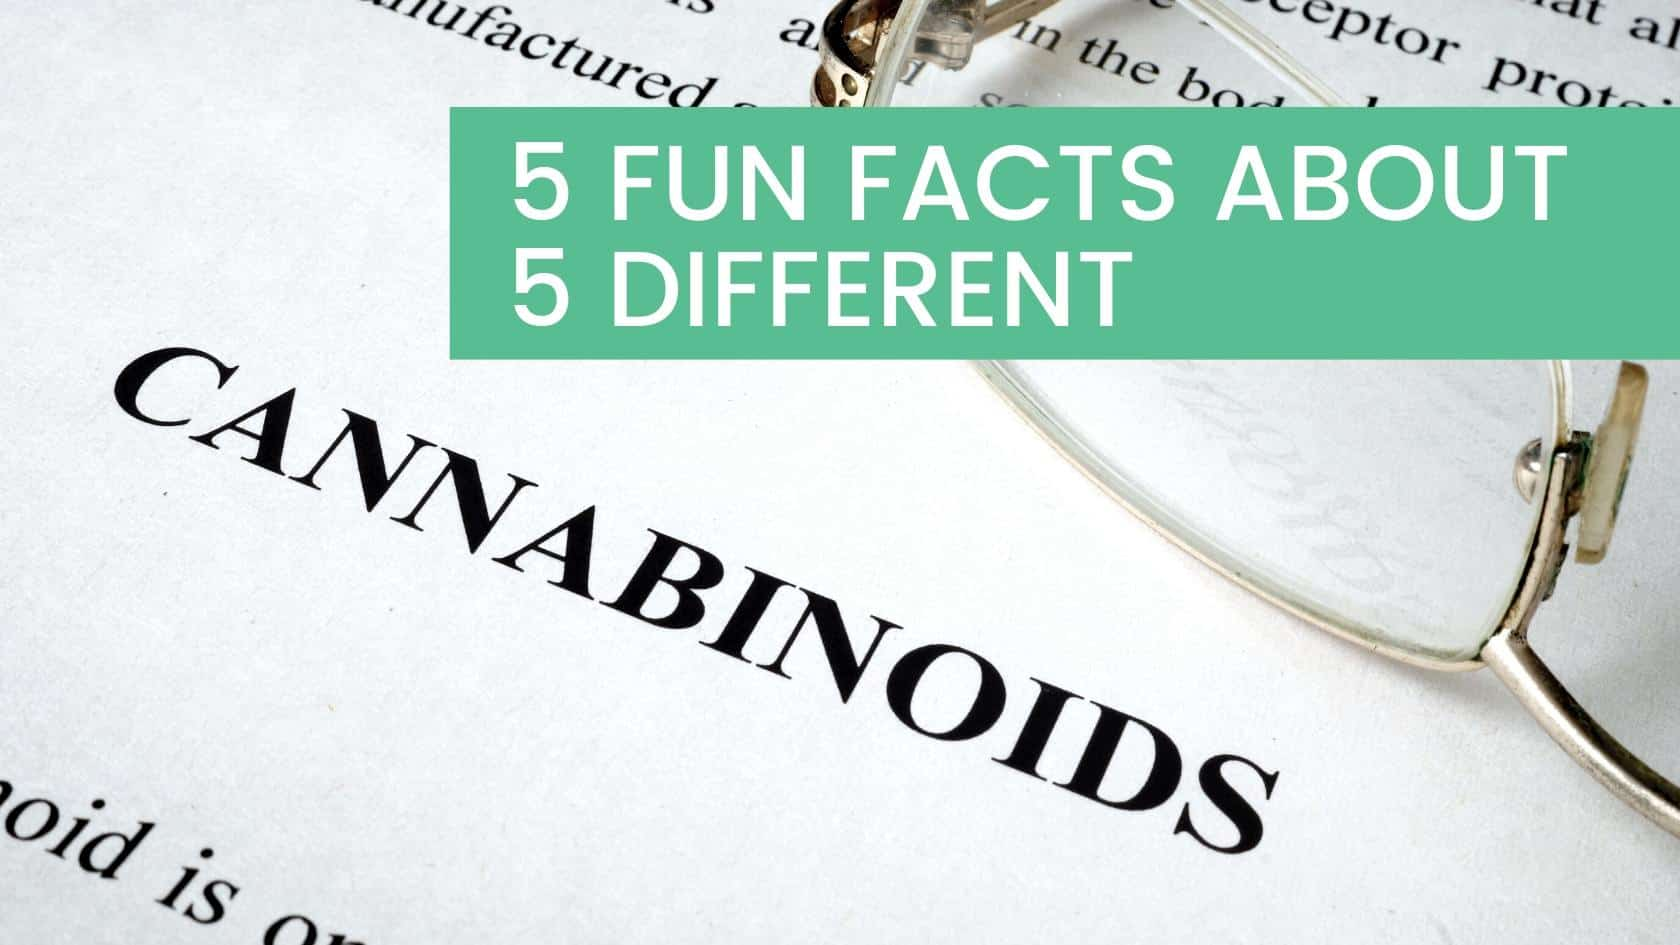 5 Fun Facts About 5 Different Cannabinoids